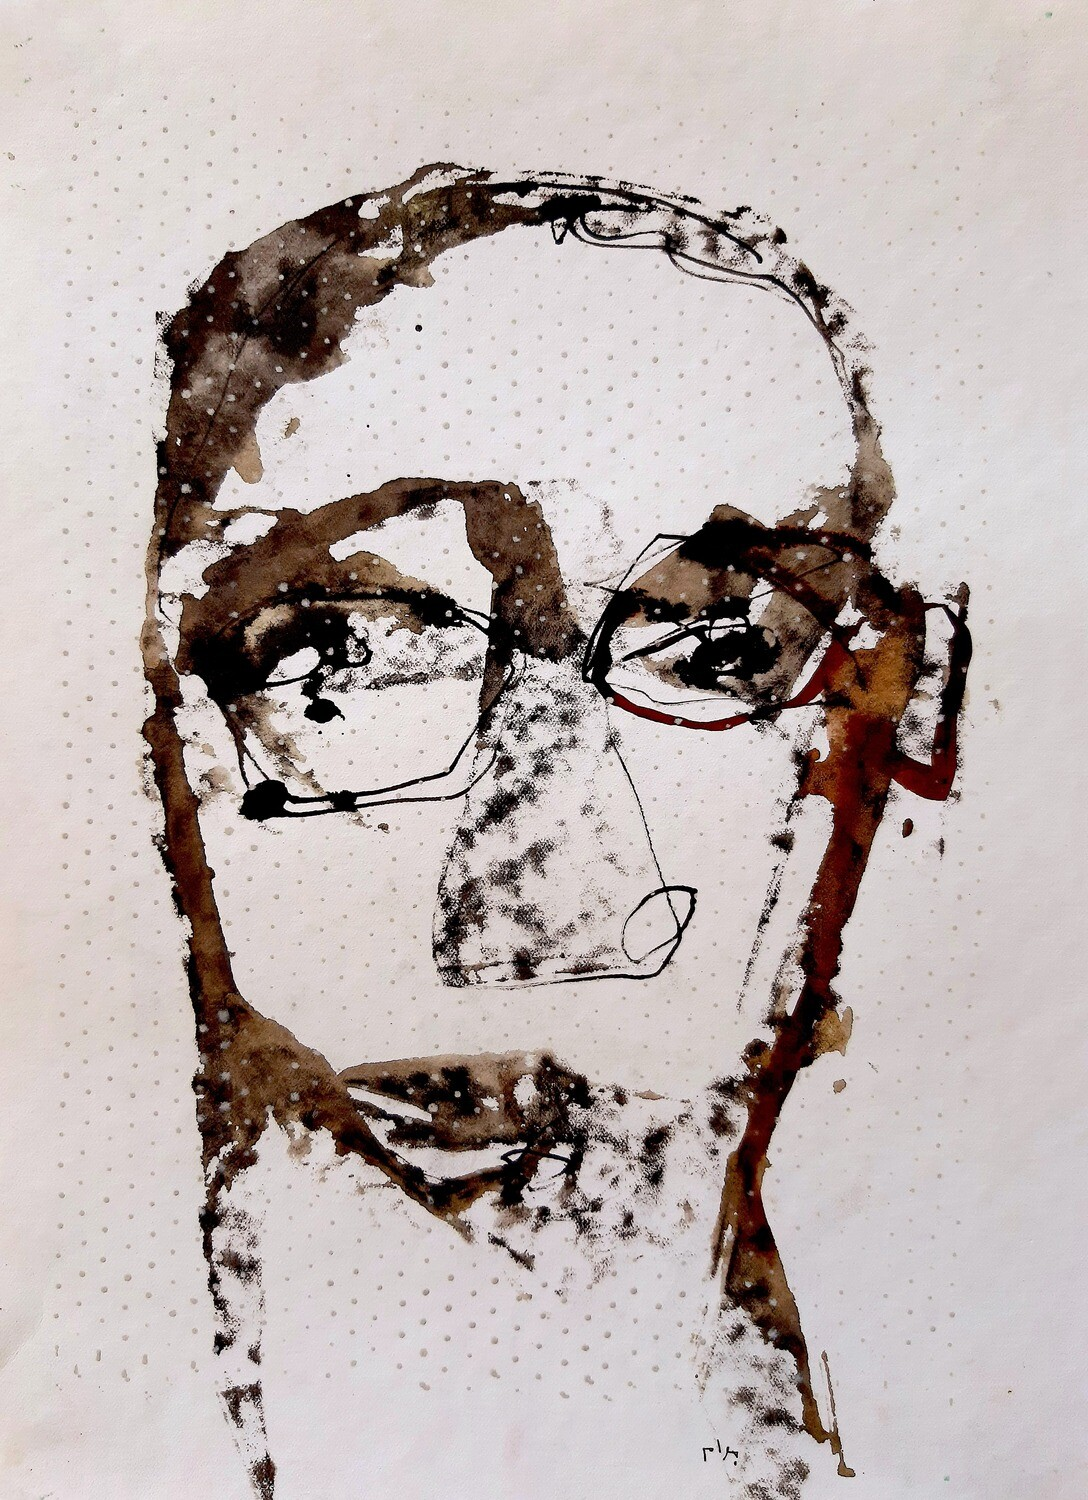 Semaan Khawam - 'Self-portrait'